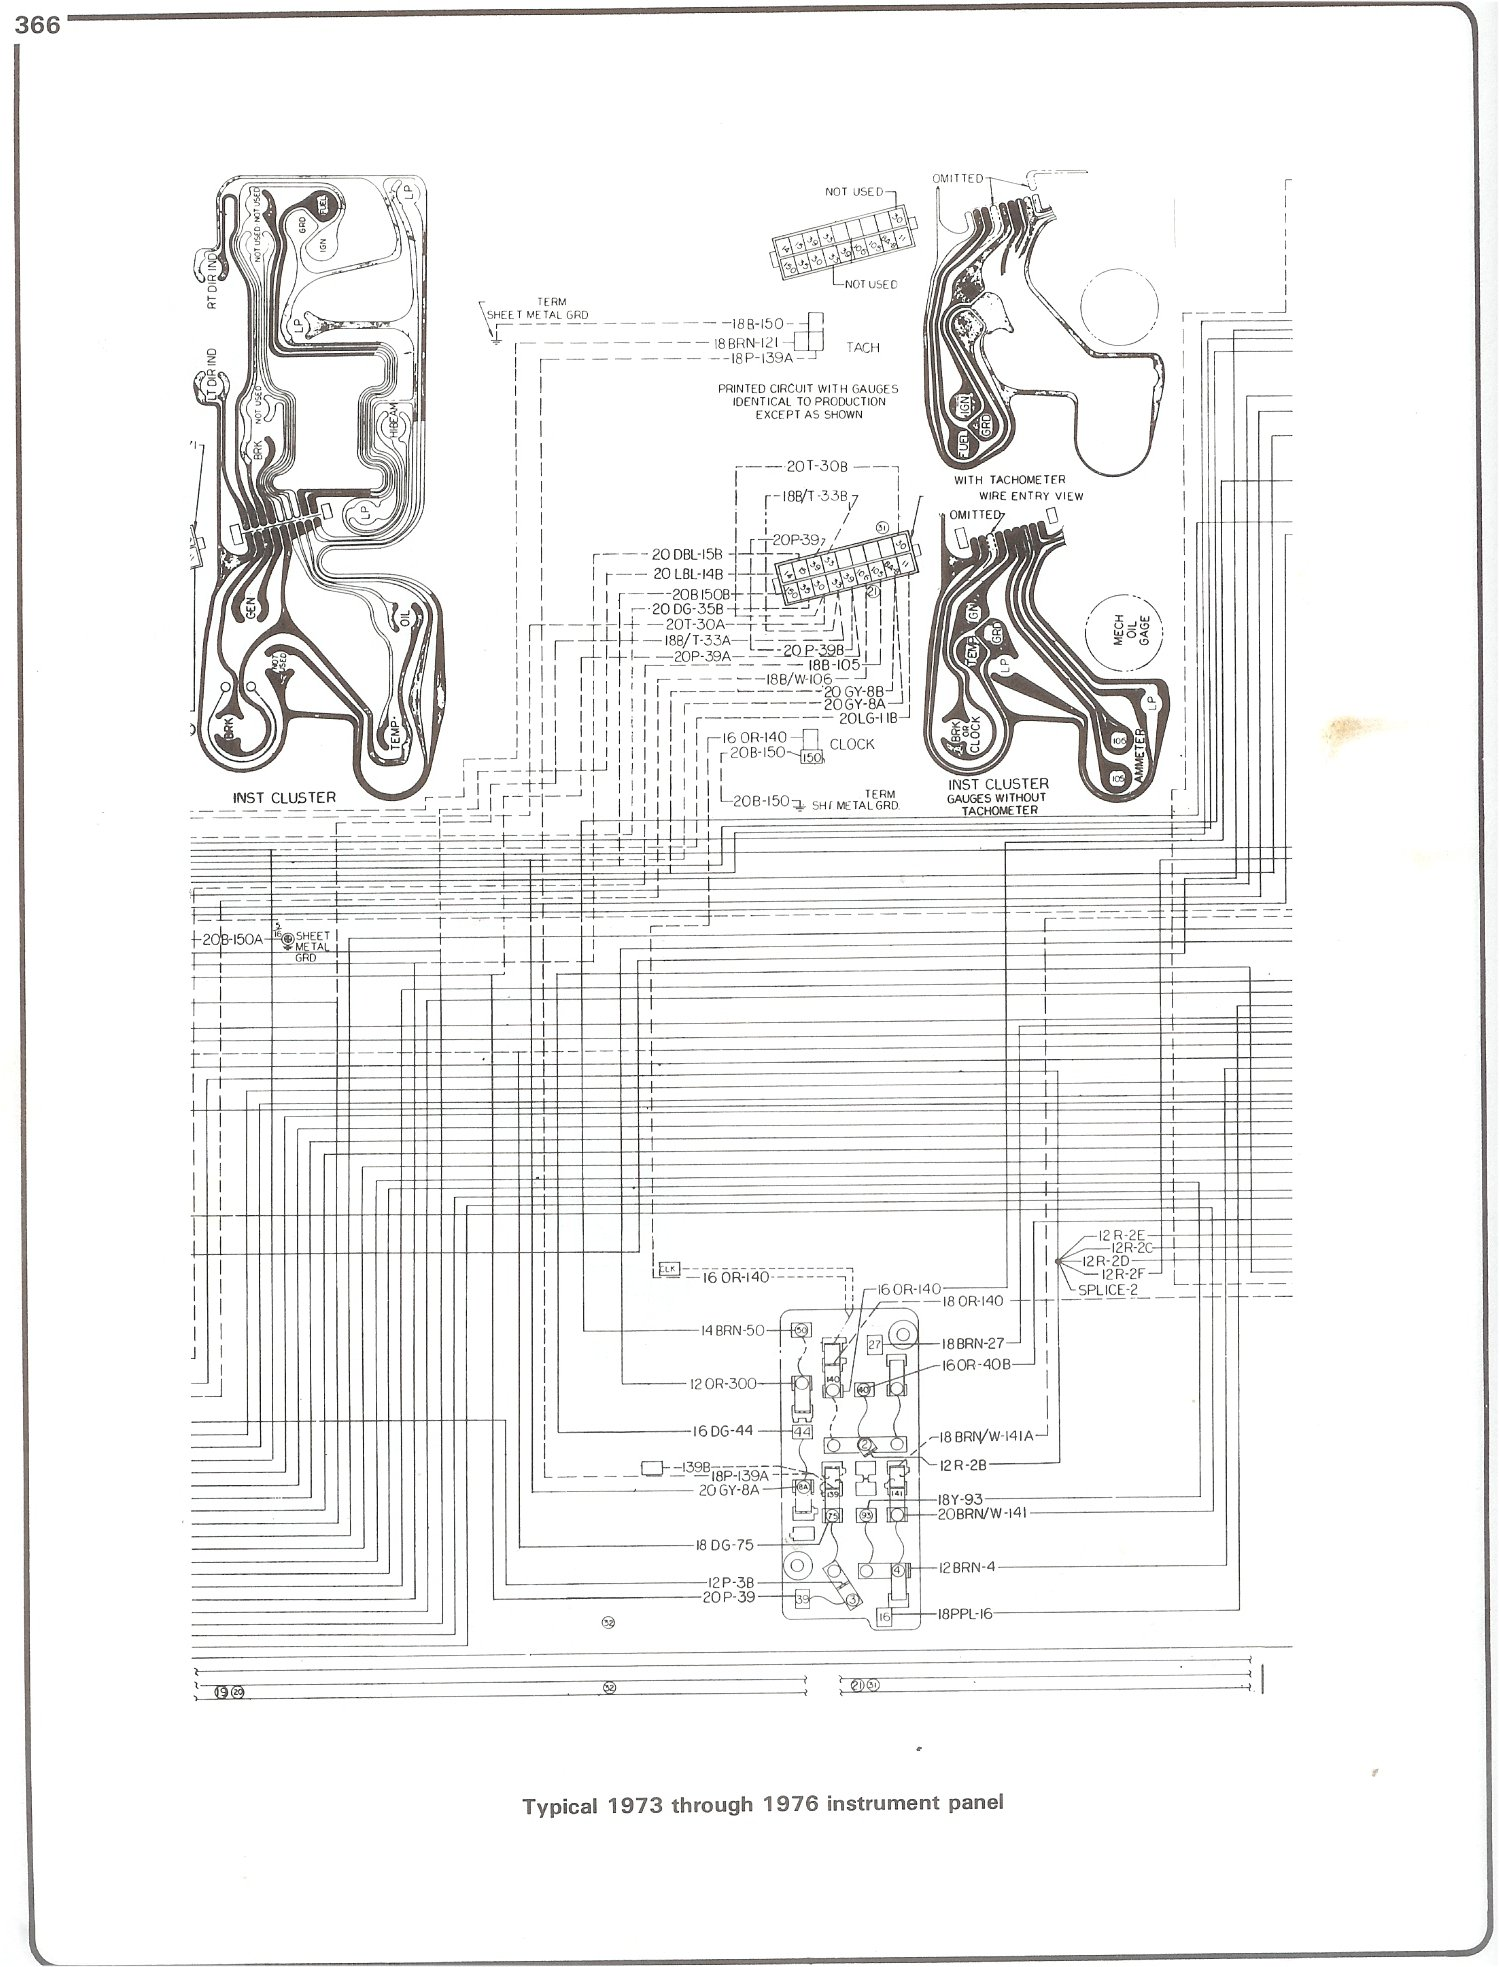 complete 73 87 wiring diagrams rh forum 73 87chevytrucks com 86 chevy s10 wiring diagram 86 chevy starter wiring diagram